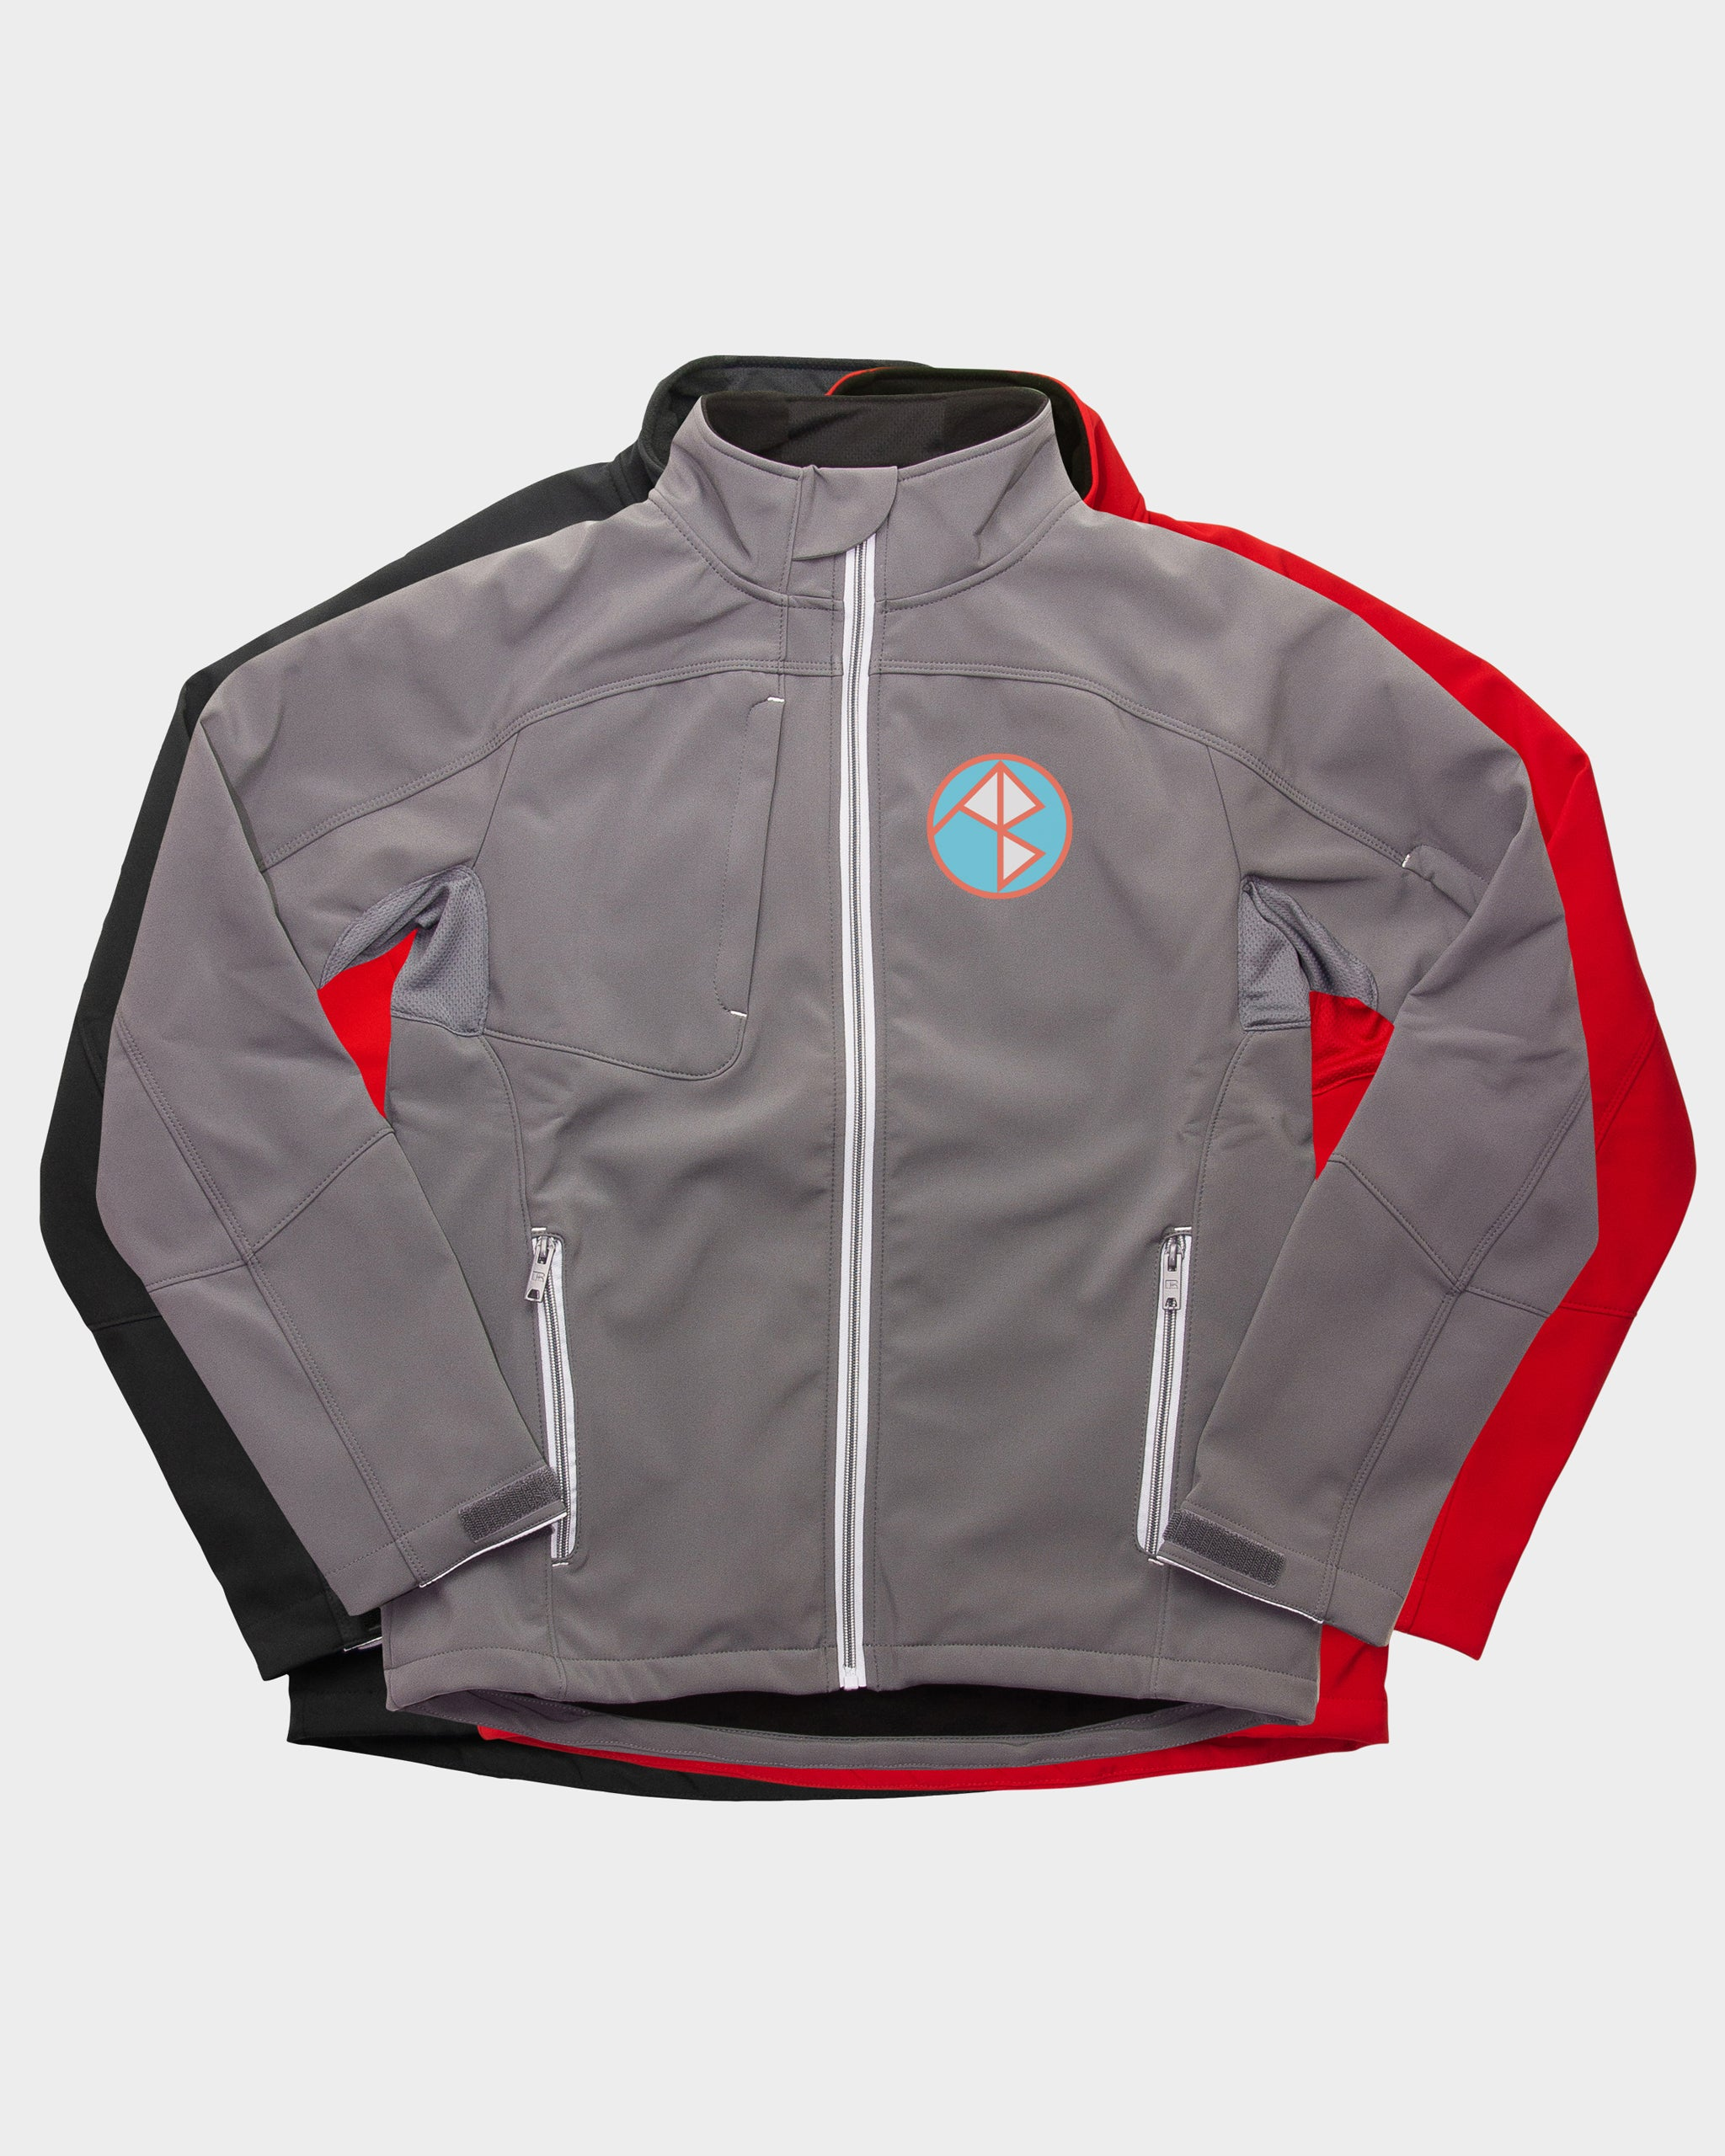 Russell Bionic Jackets For Custom Printing Your Design